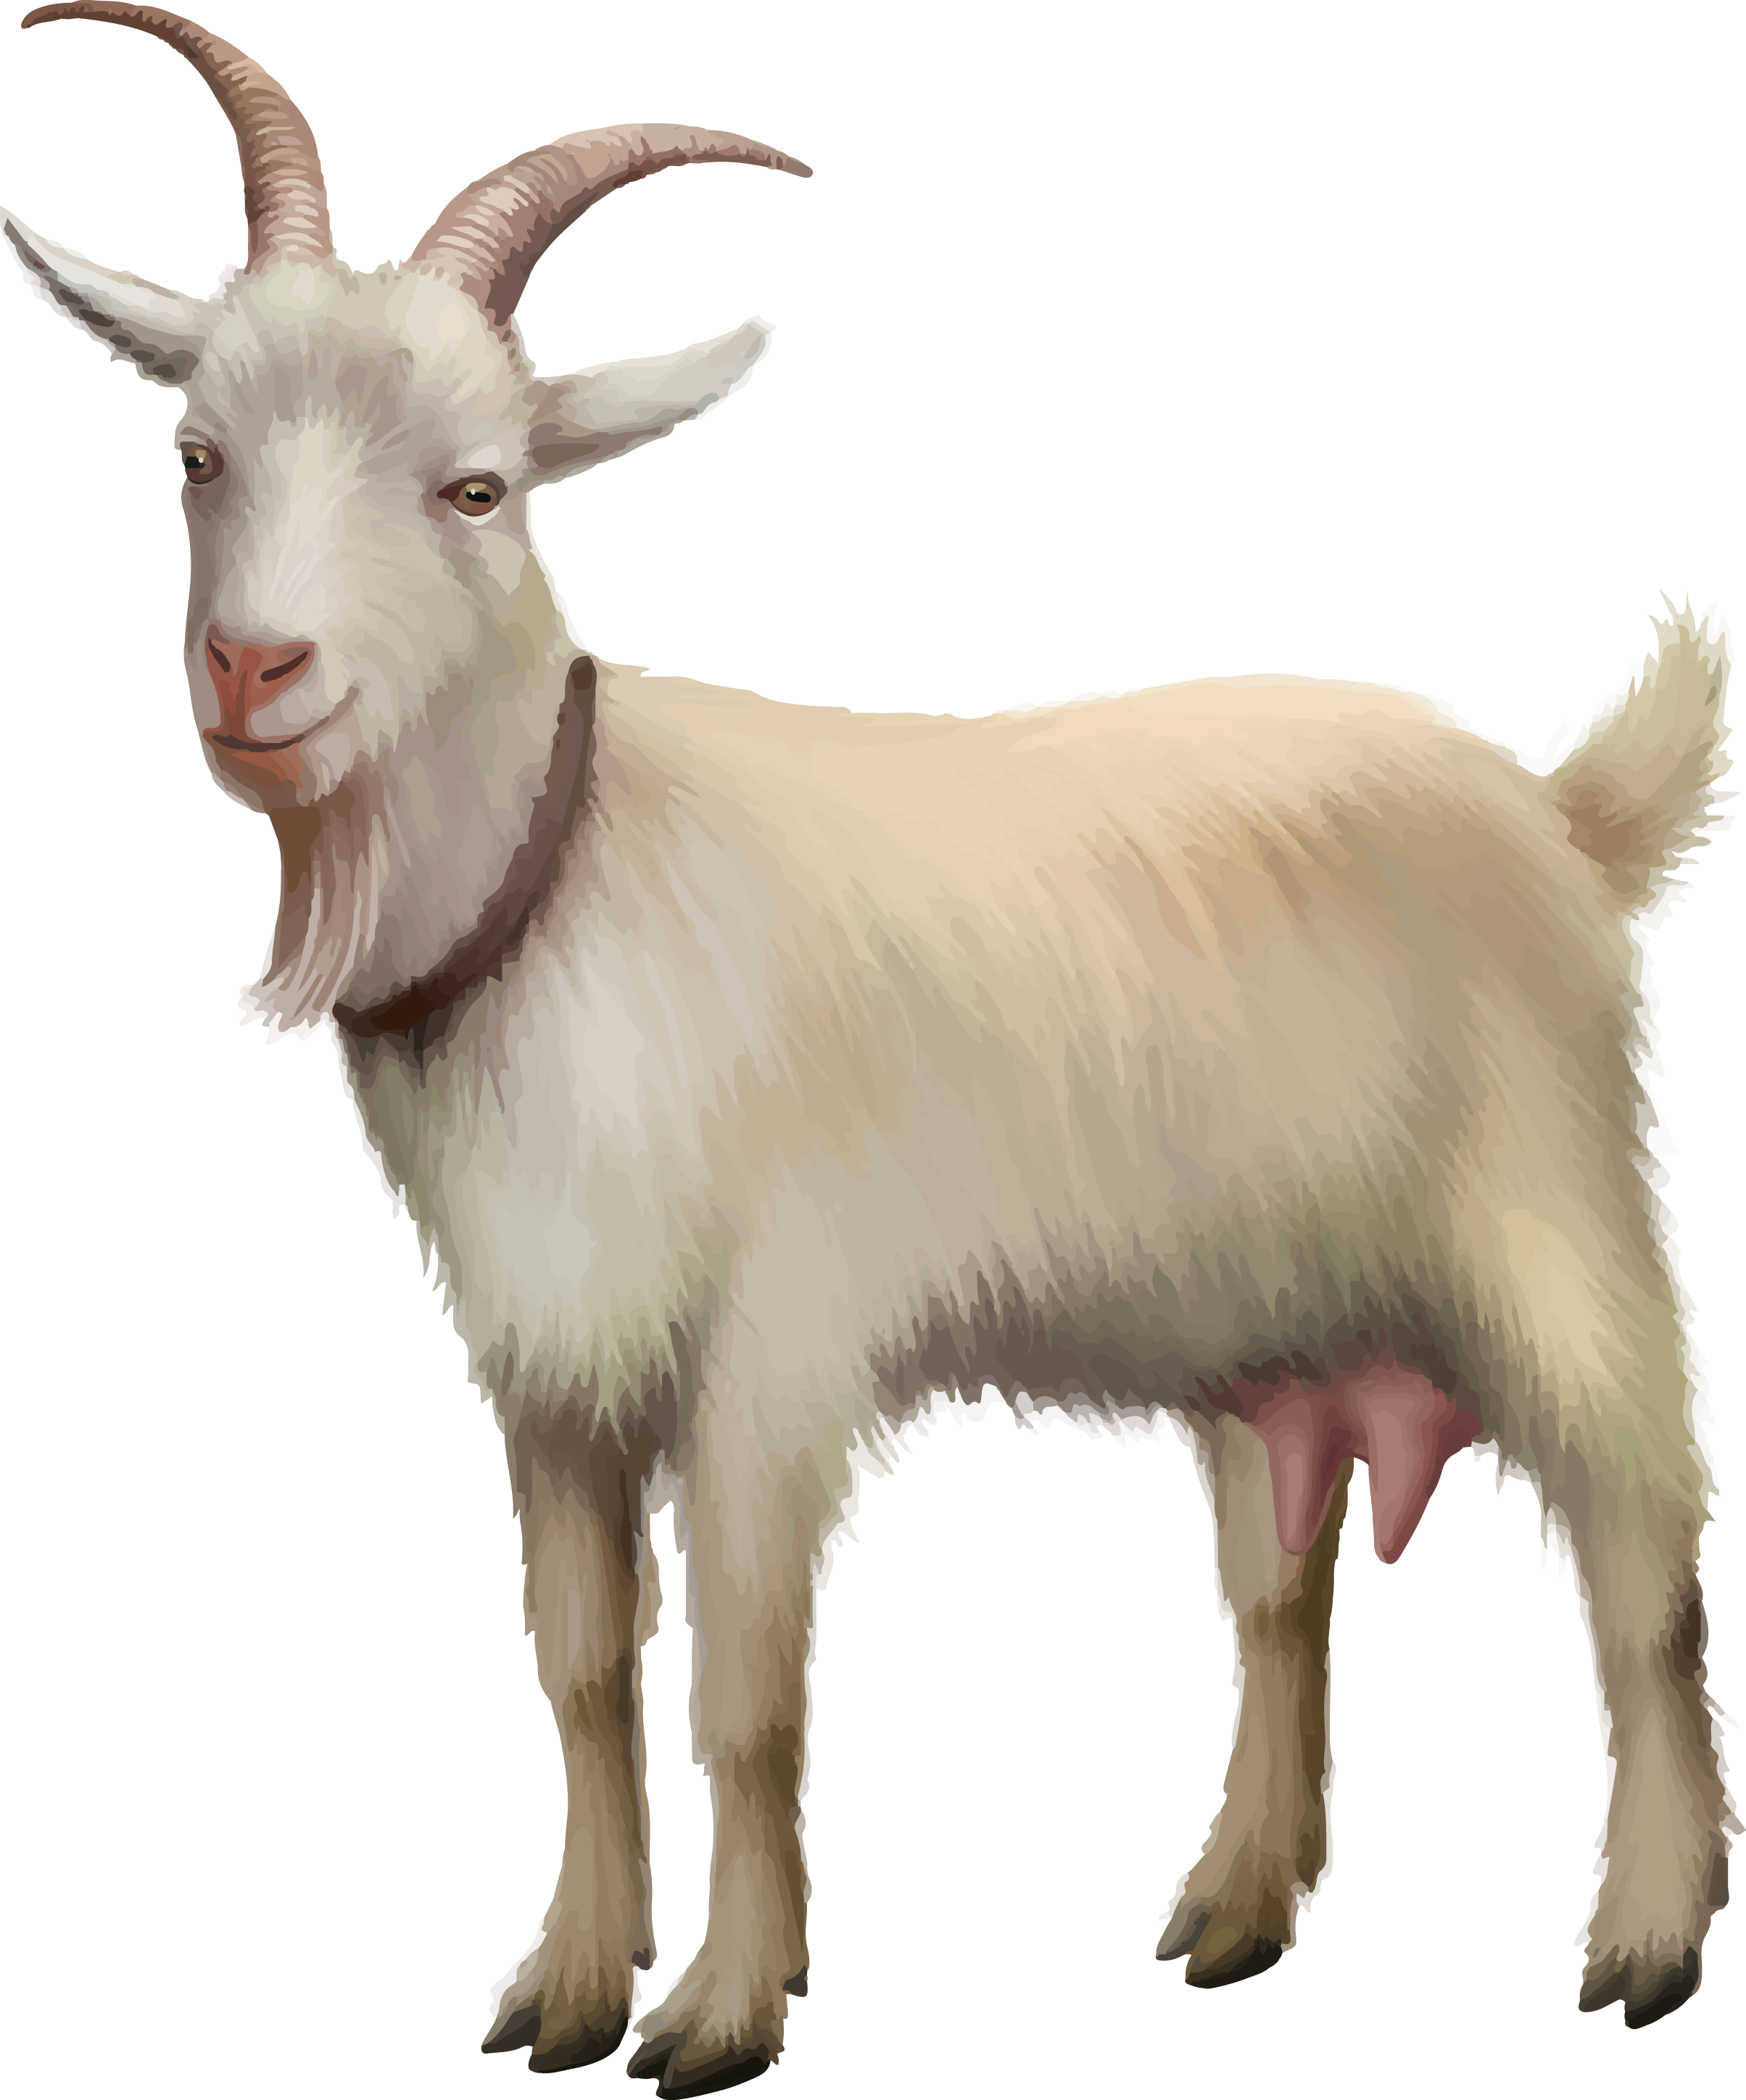 Rove goat Sheep Stock photography Stock illustration.